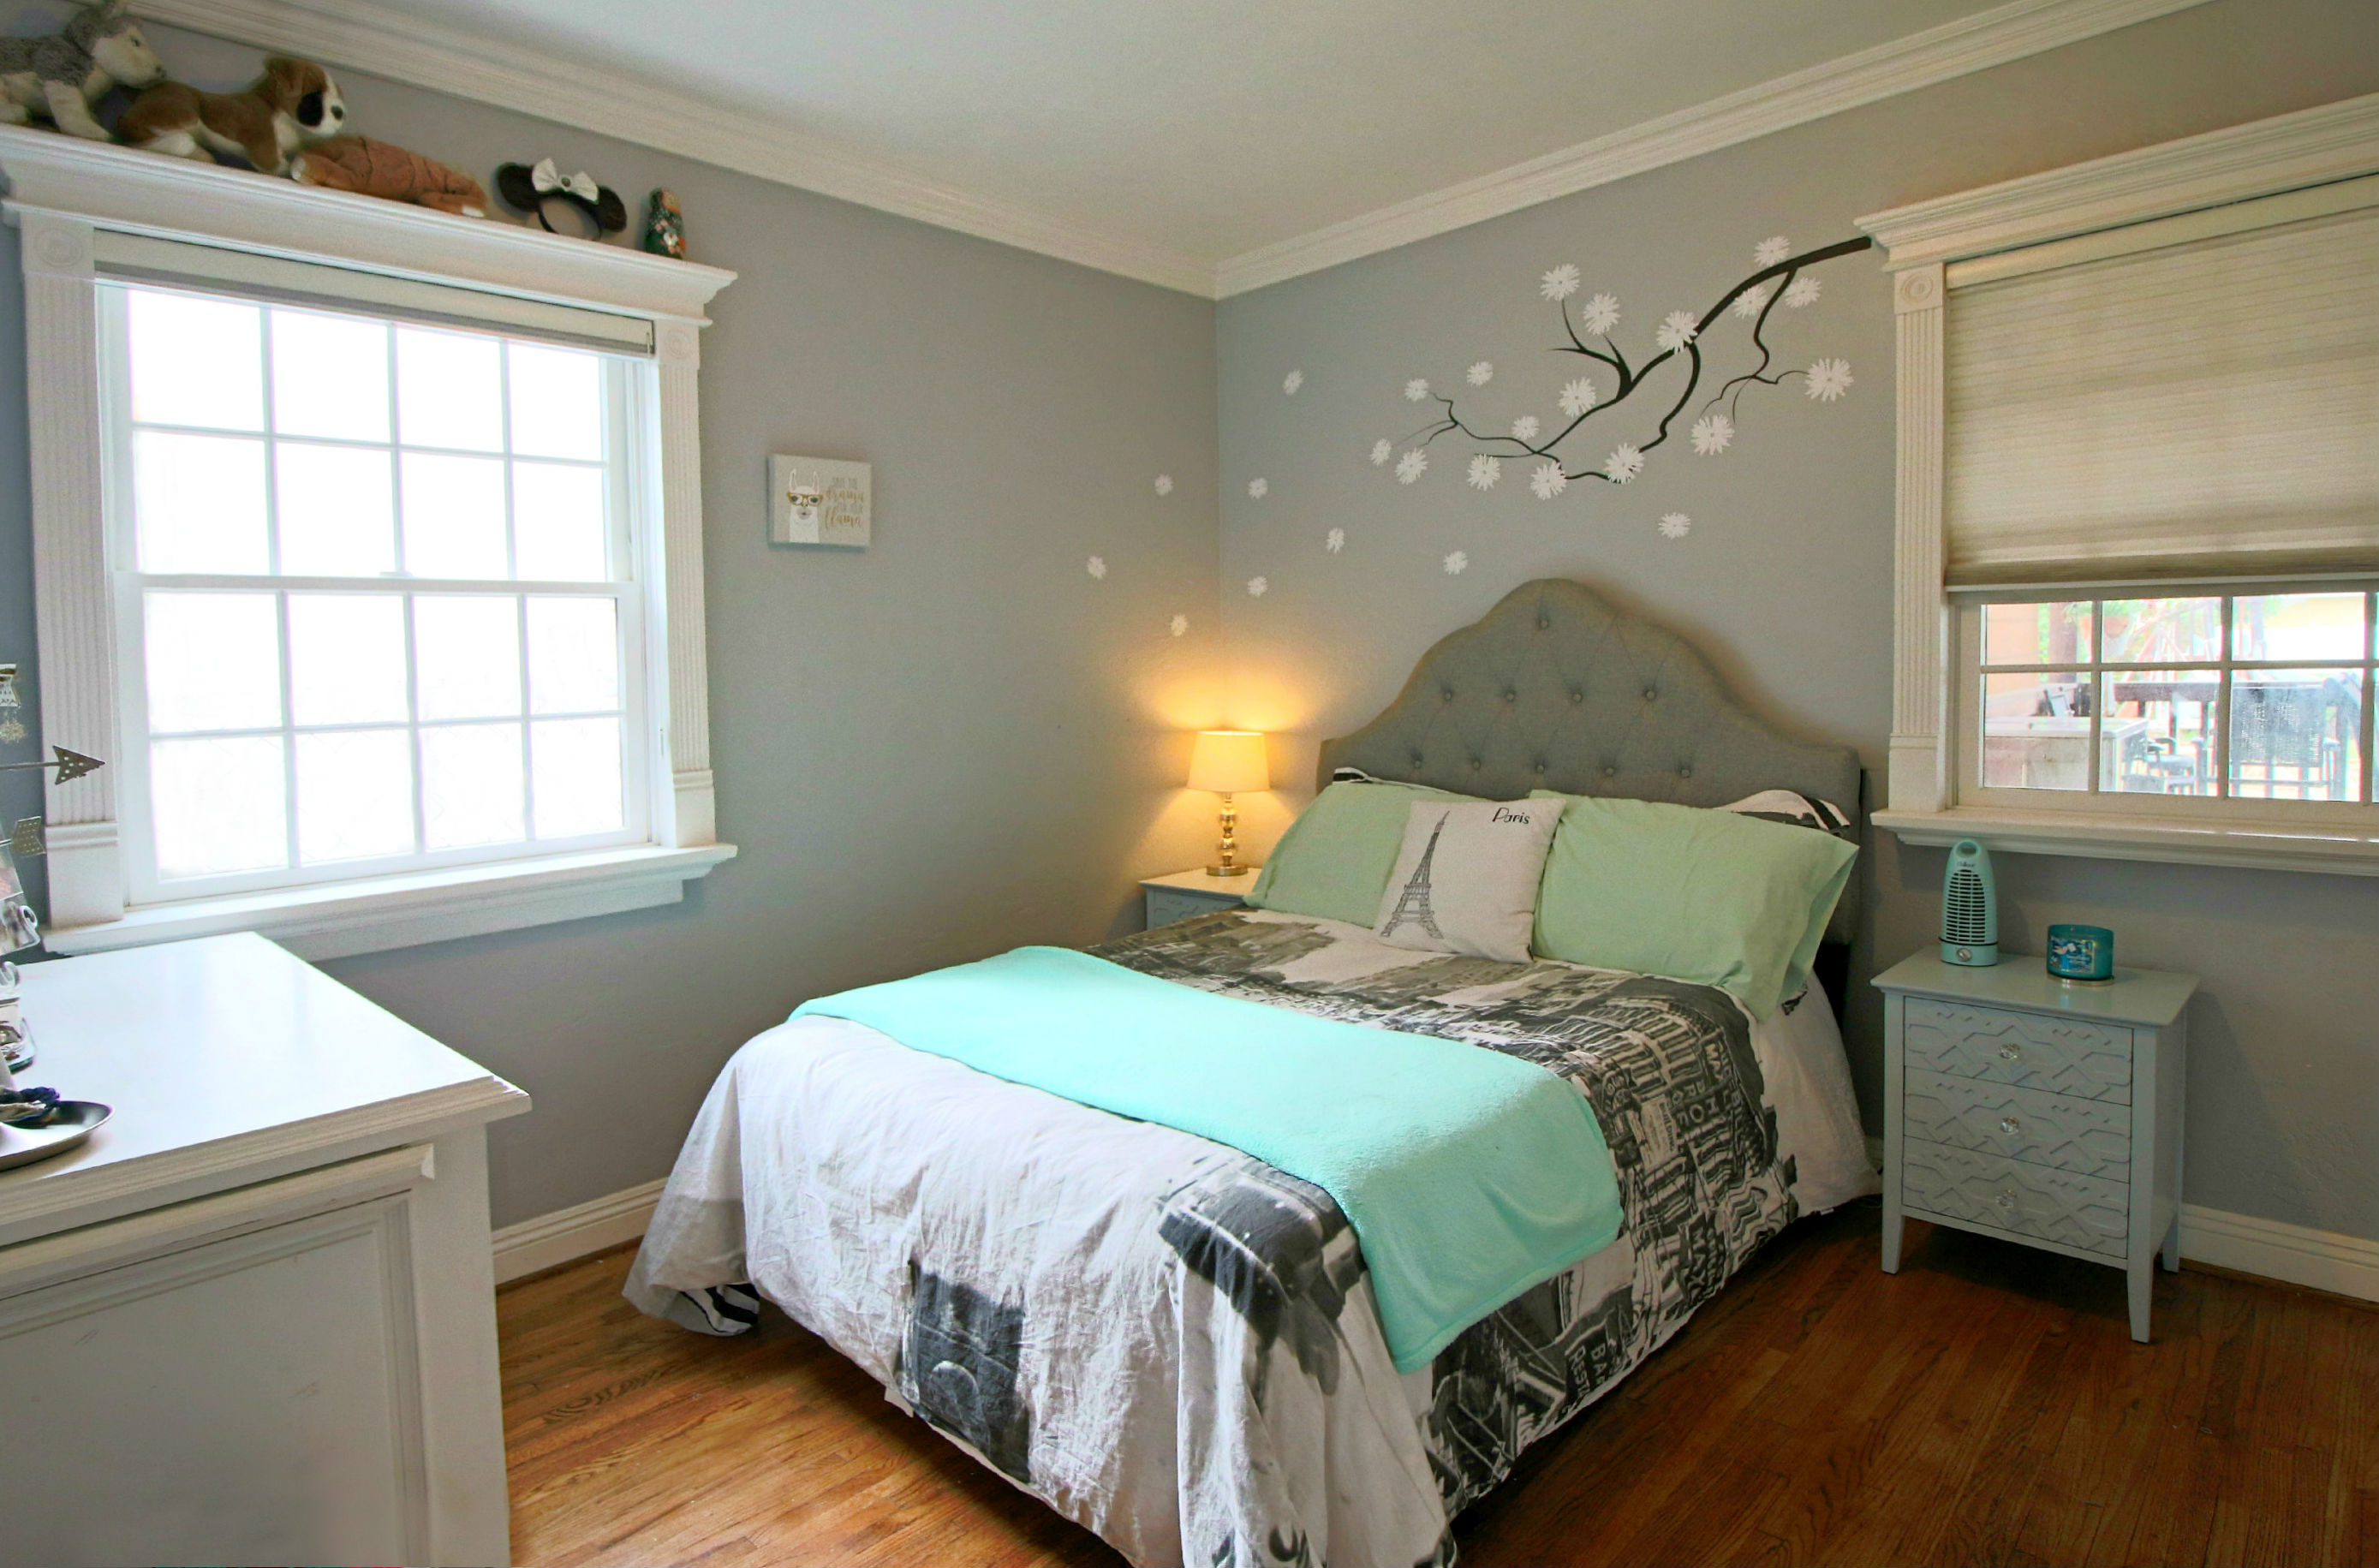 Second of three bedrooms with refinished original hardwood floors and double pane windows. Interior of home was painted with Benjamin Moore paint.